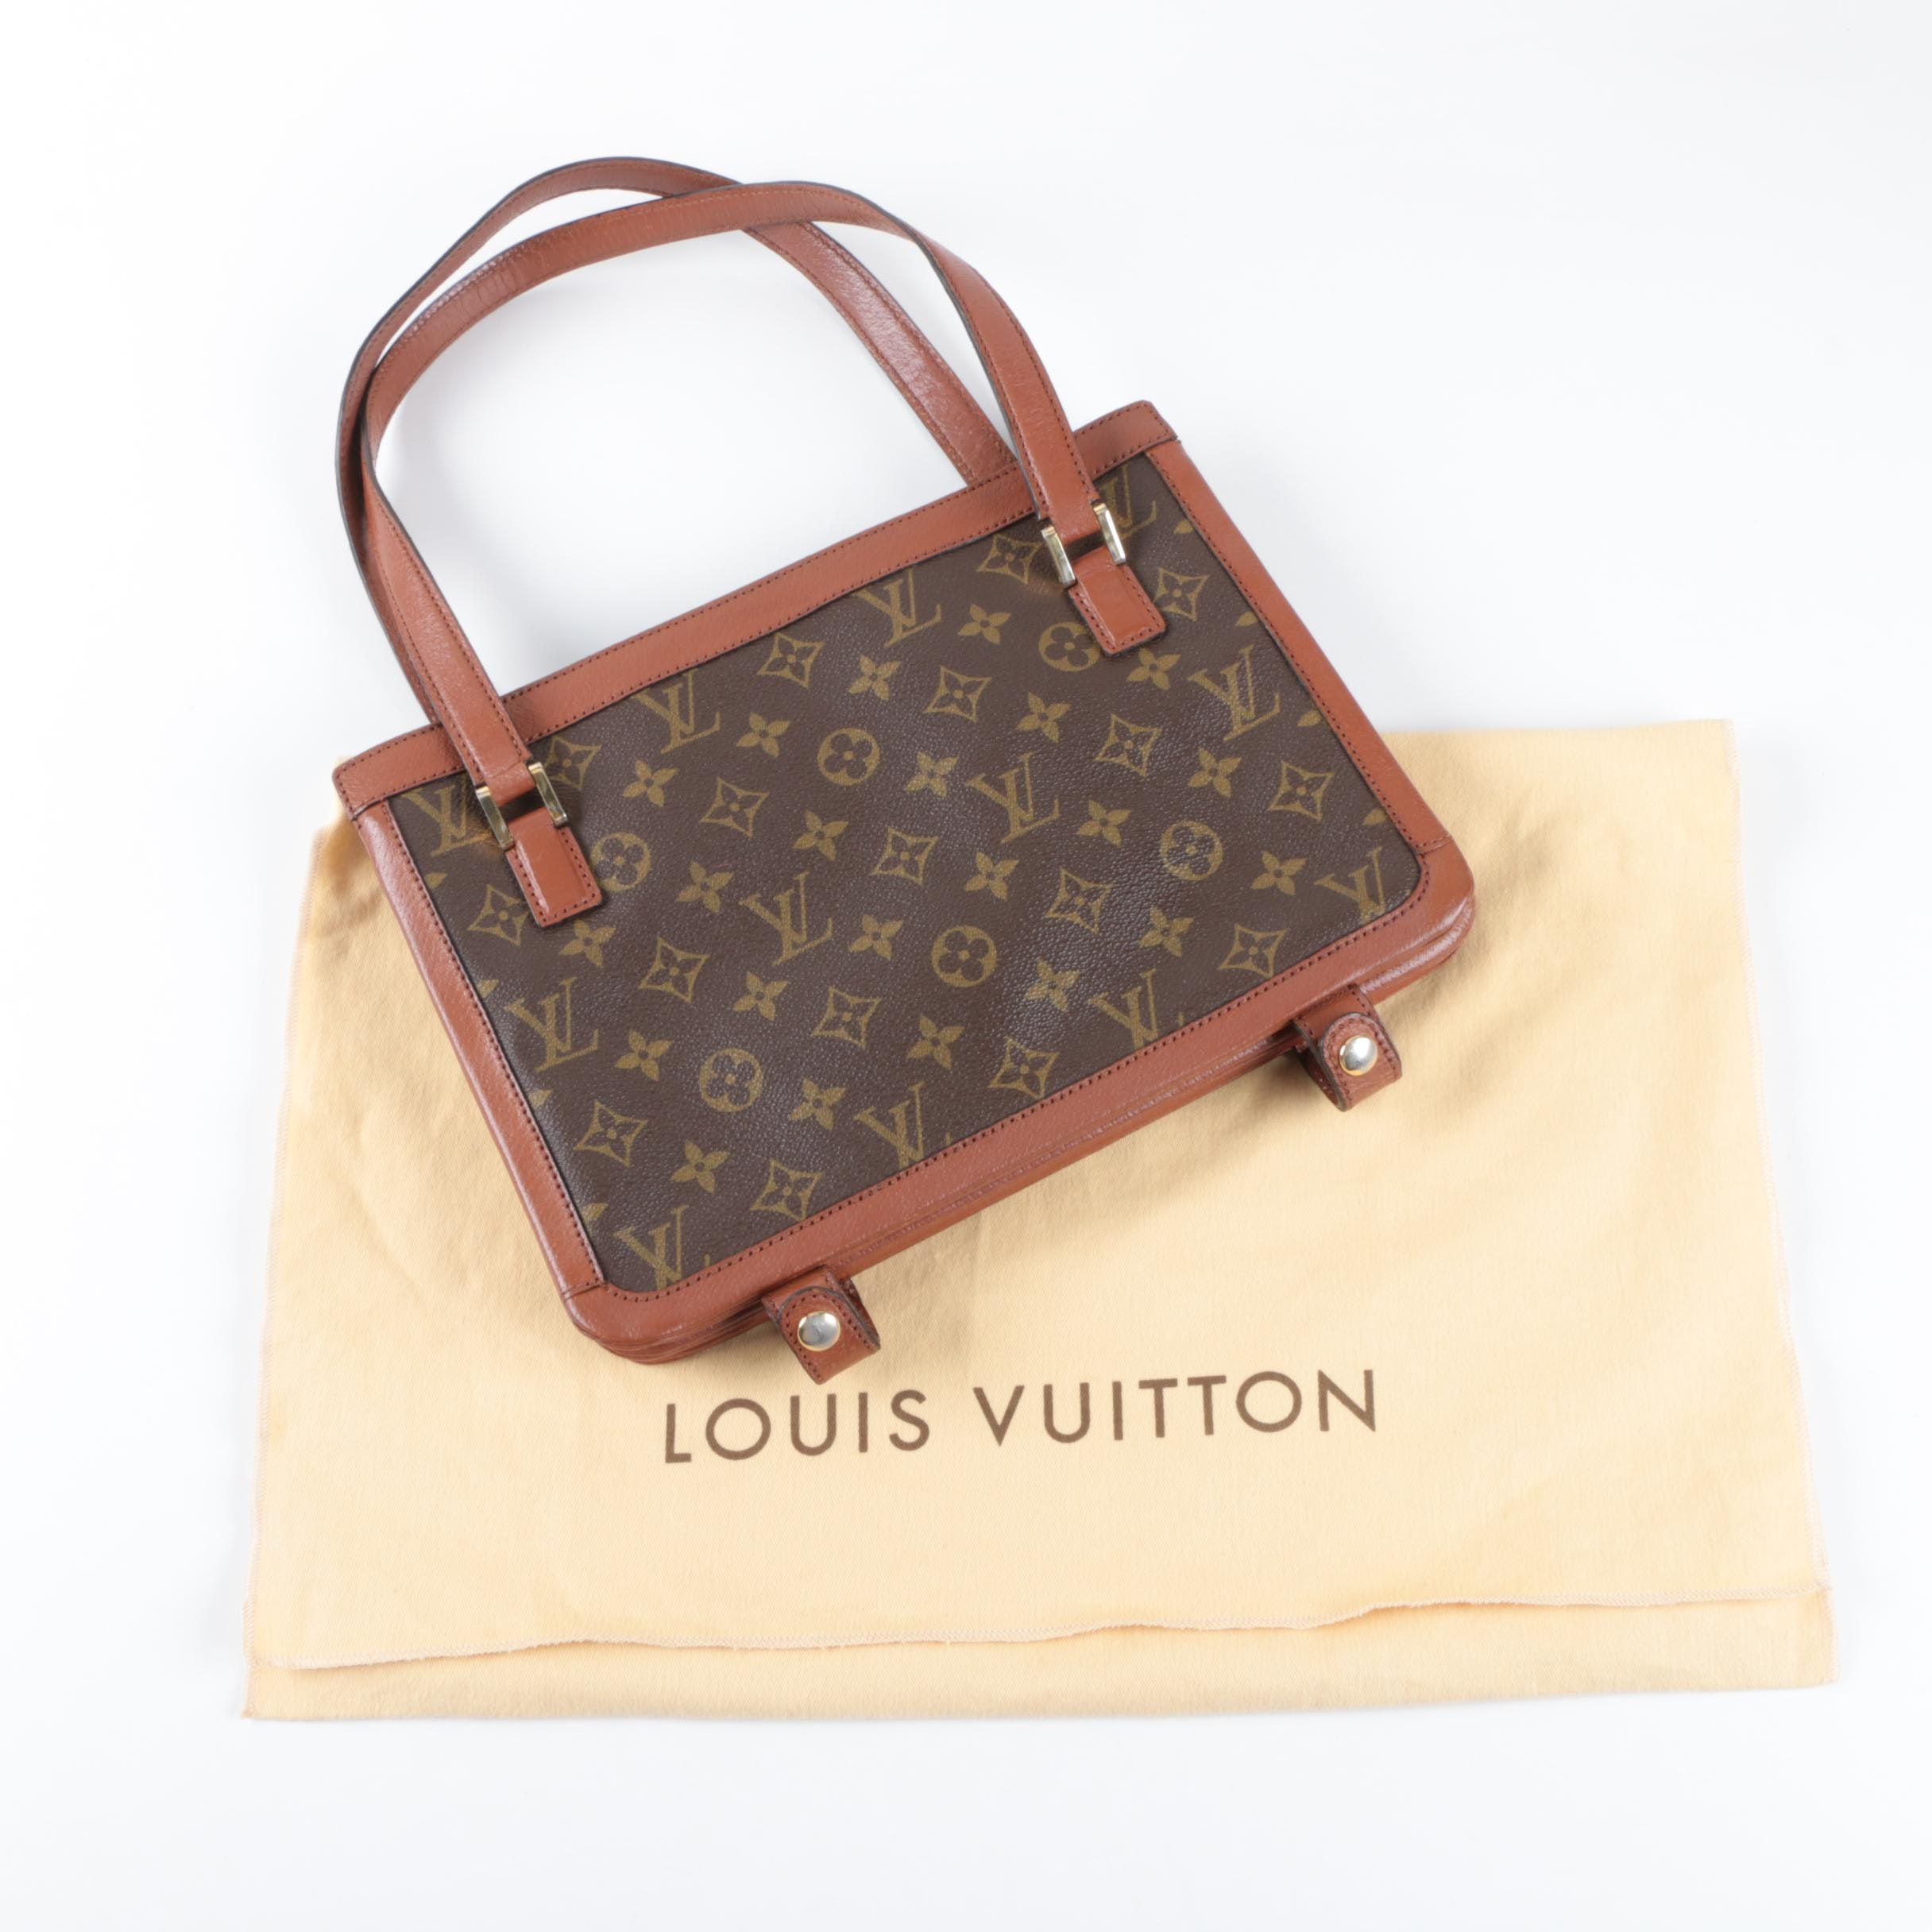 Vintage Louis Vuitton Monogram Canvas Shoulder Bag